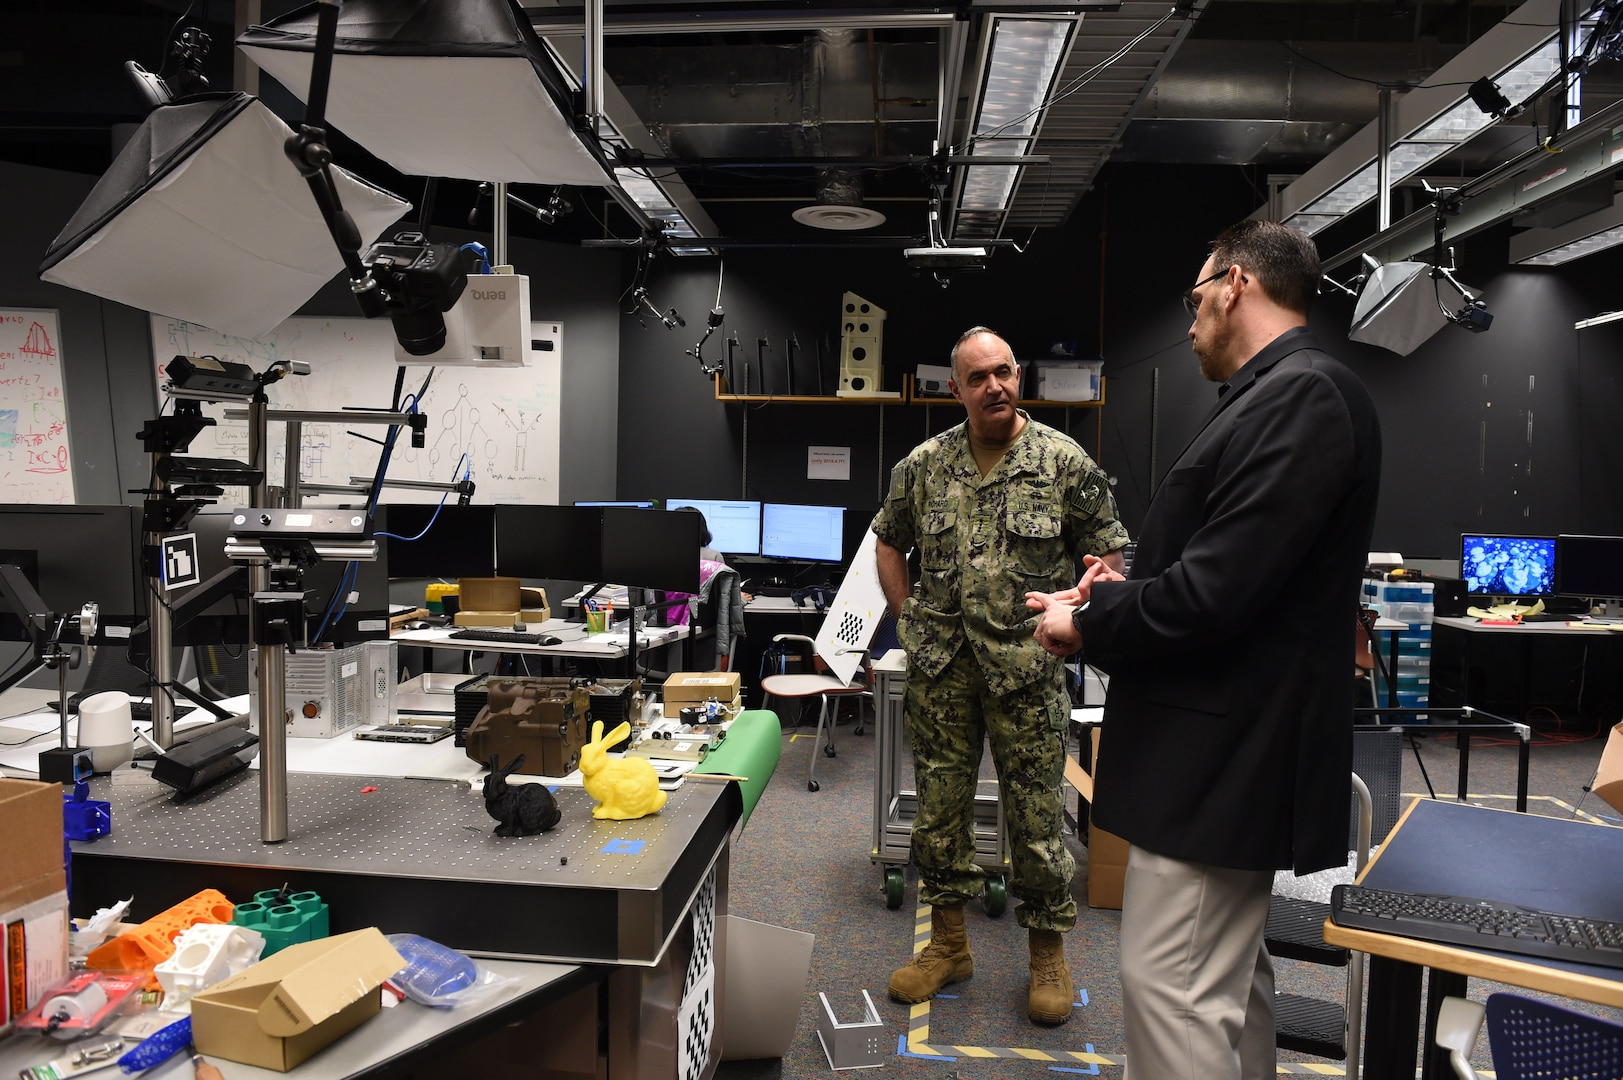 Eliot Winer, director of Iowa State University (ISU) Virtual Reality Applications Center (VRAC), gives U.S. Navy Adm. Charles Richard, commander of U.S. Strategic Command (USSTRATCOM), at tour of the VRAC's Design and Build Lab in Ames, Iowa, March 12, 2020. Richard attended the 2020 Deterrence and Assurance Academic Alliance Conference, a two-day conference featuring a USSTRATCOM-led tabletop exercise focused on deterrence issues, along with student panel presentations, tours and demonstrations, a national security job fair.